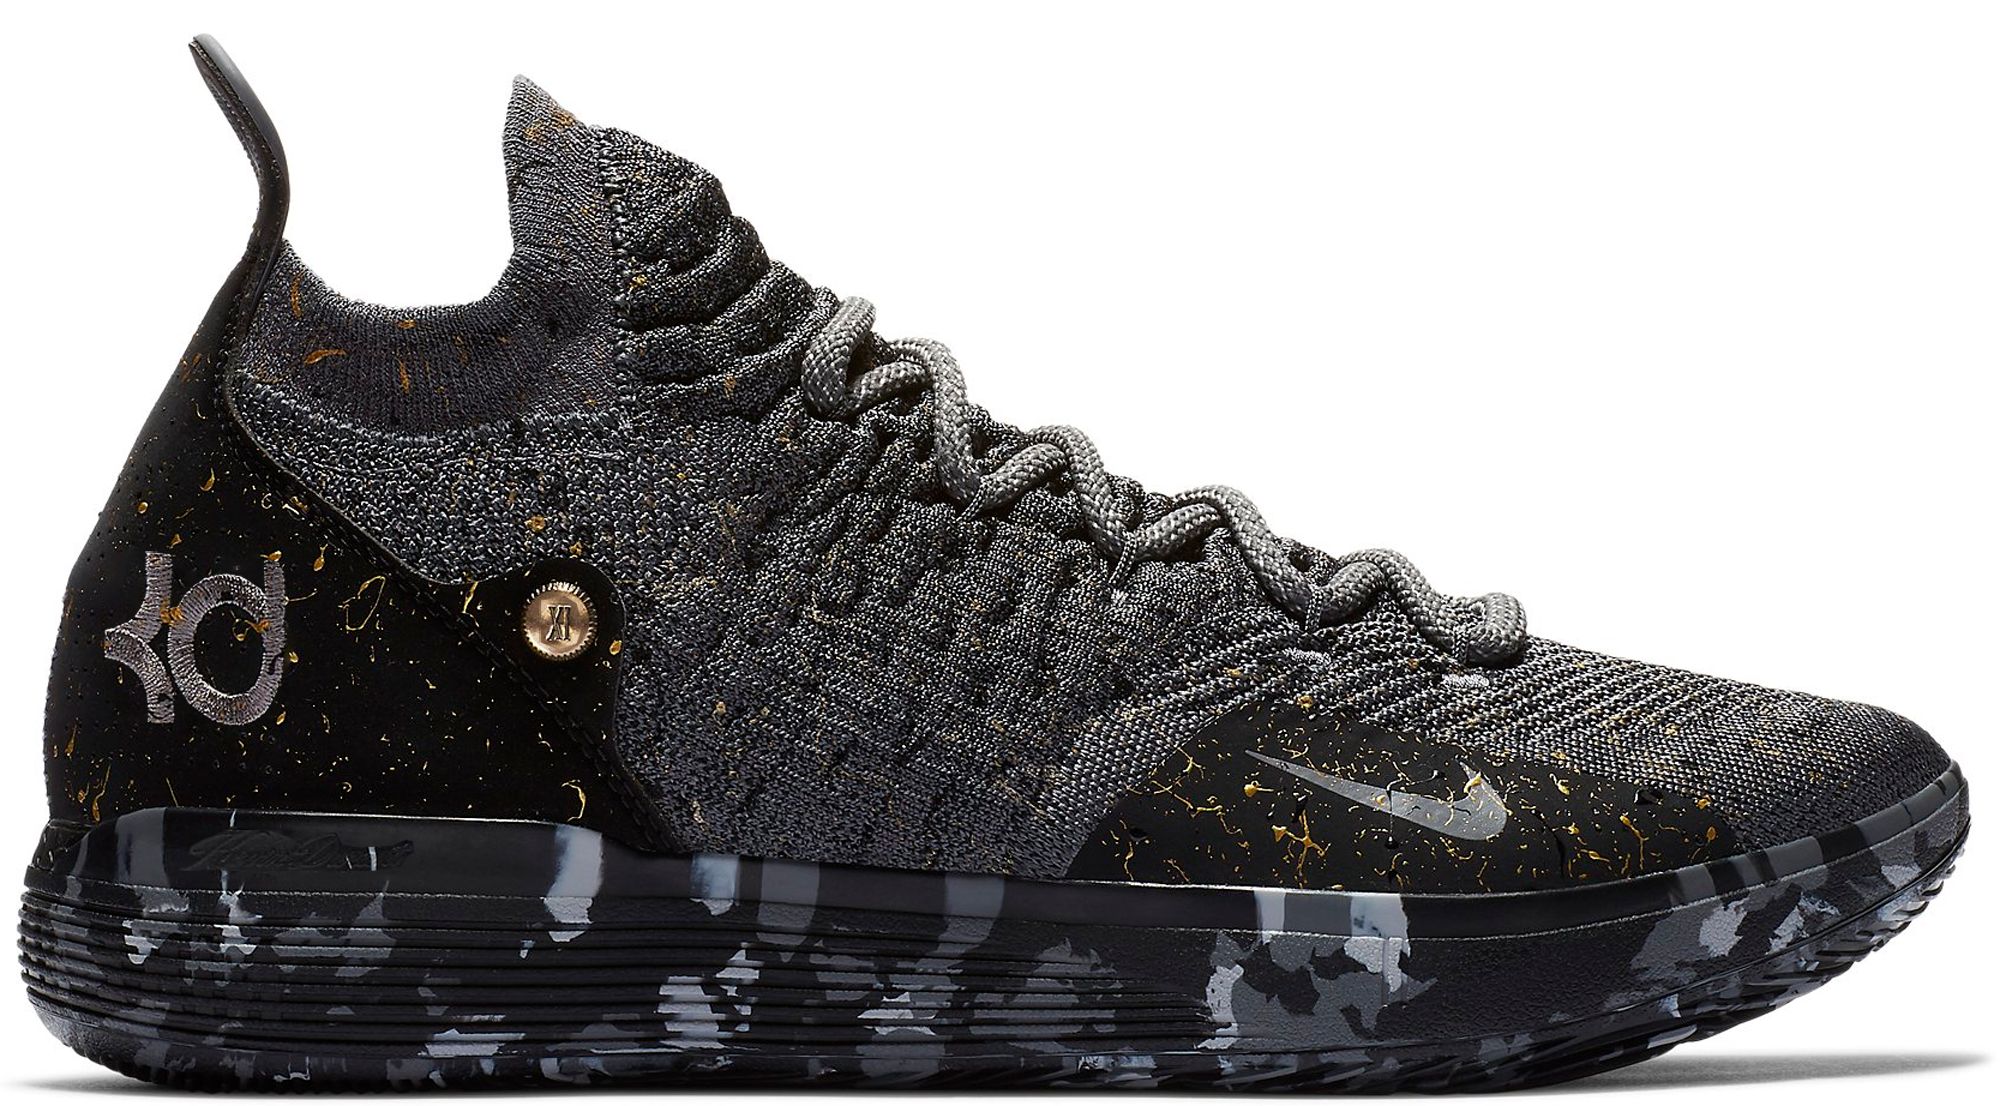 KD 11 Multi-Color Metallic Gold